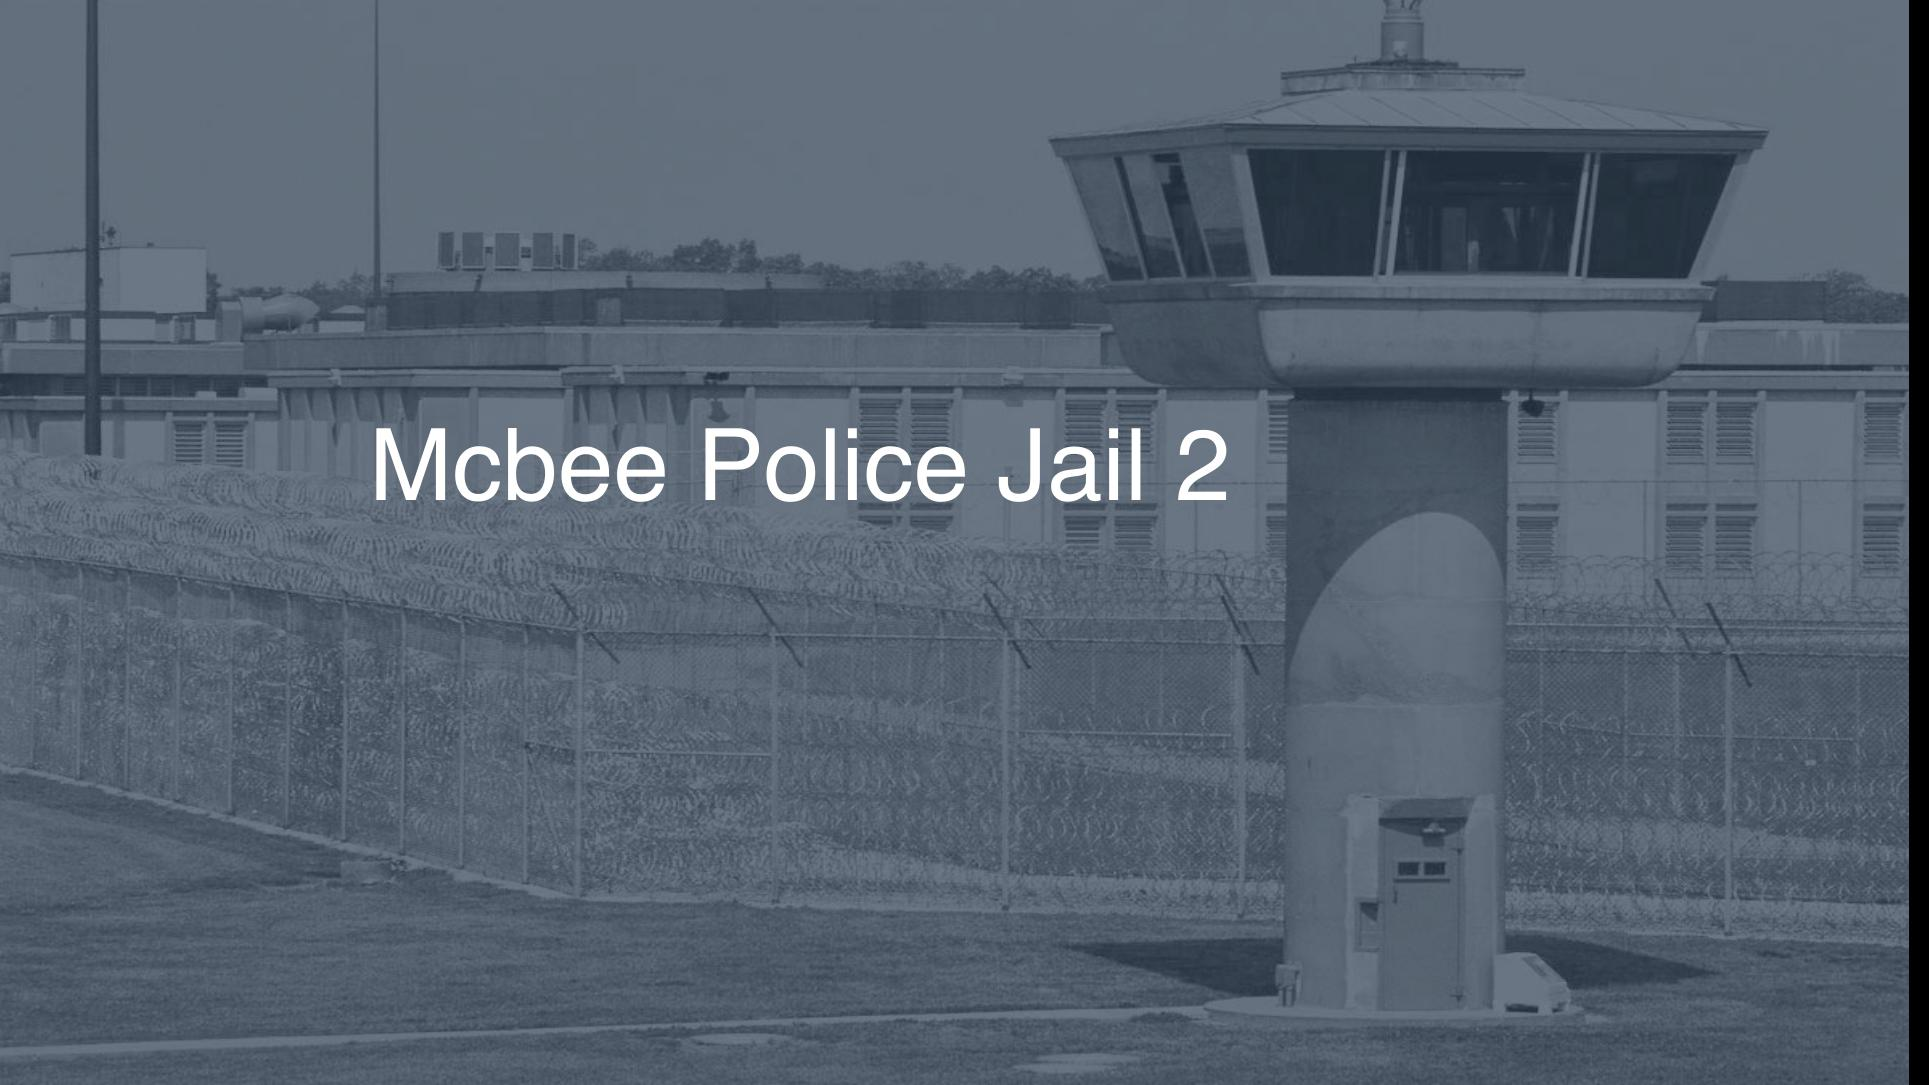 McBee Police Jail correctional facility picture